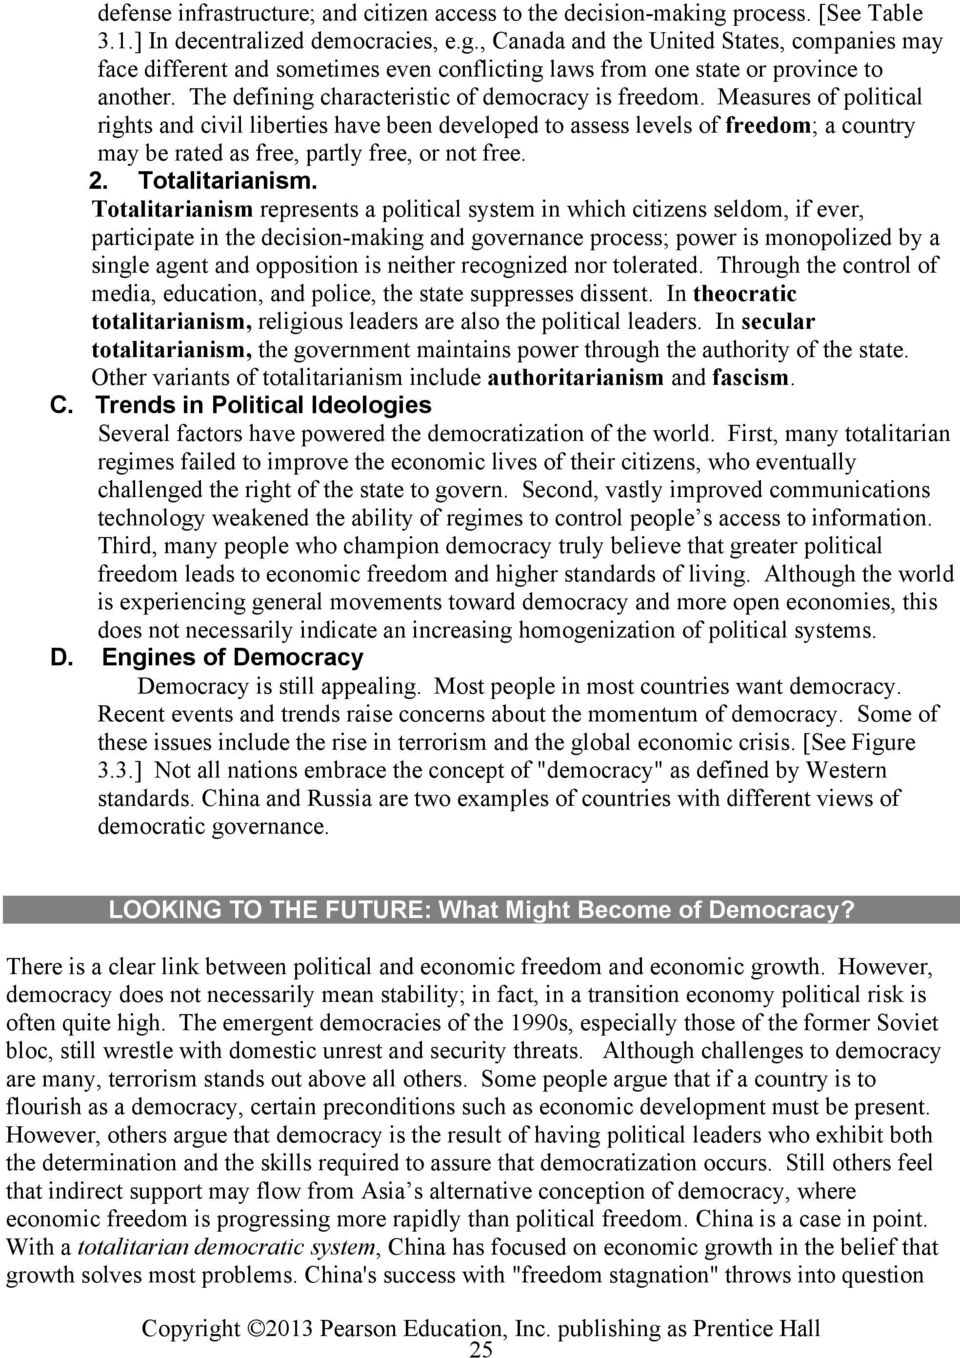 democracy and totalitarianism essay 91 121 113 106 democracy and totalitarianism essay